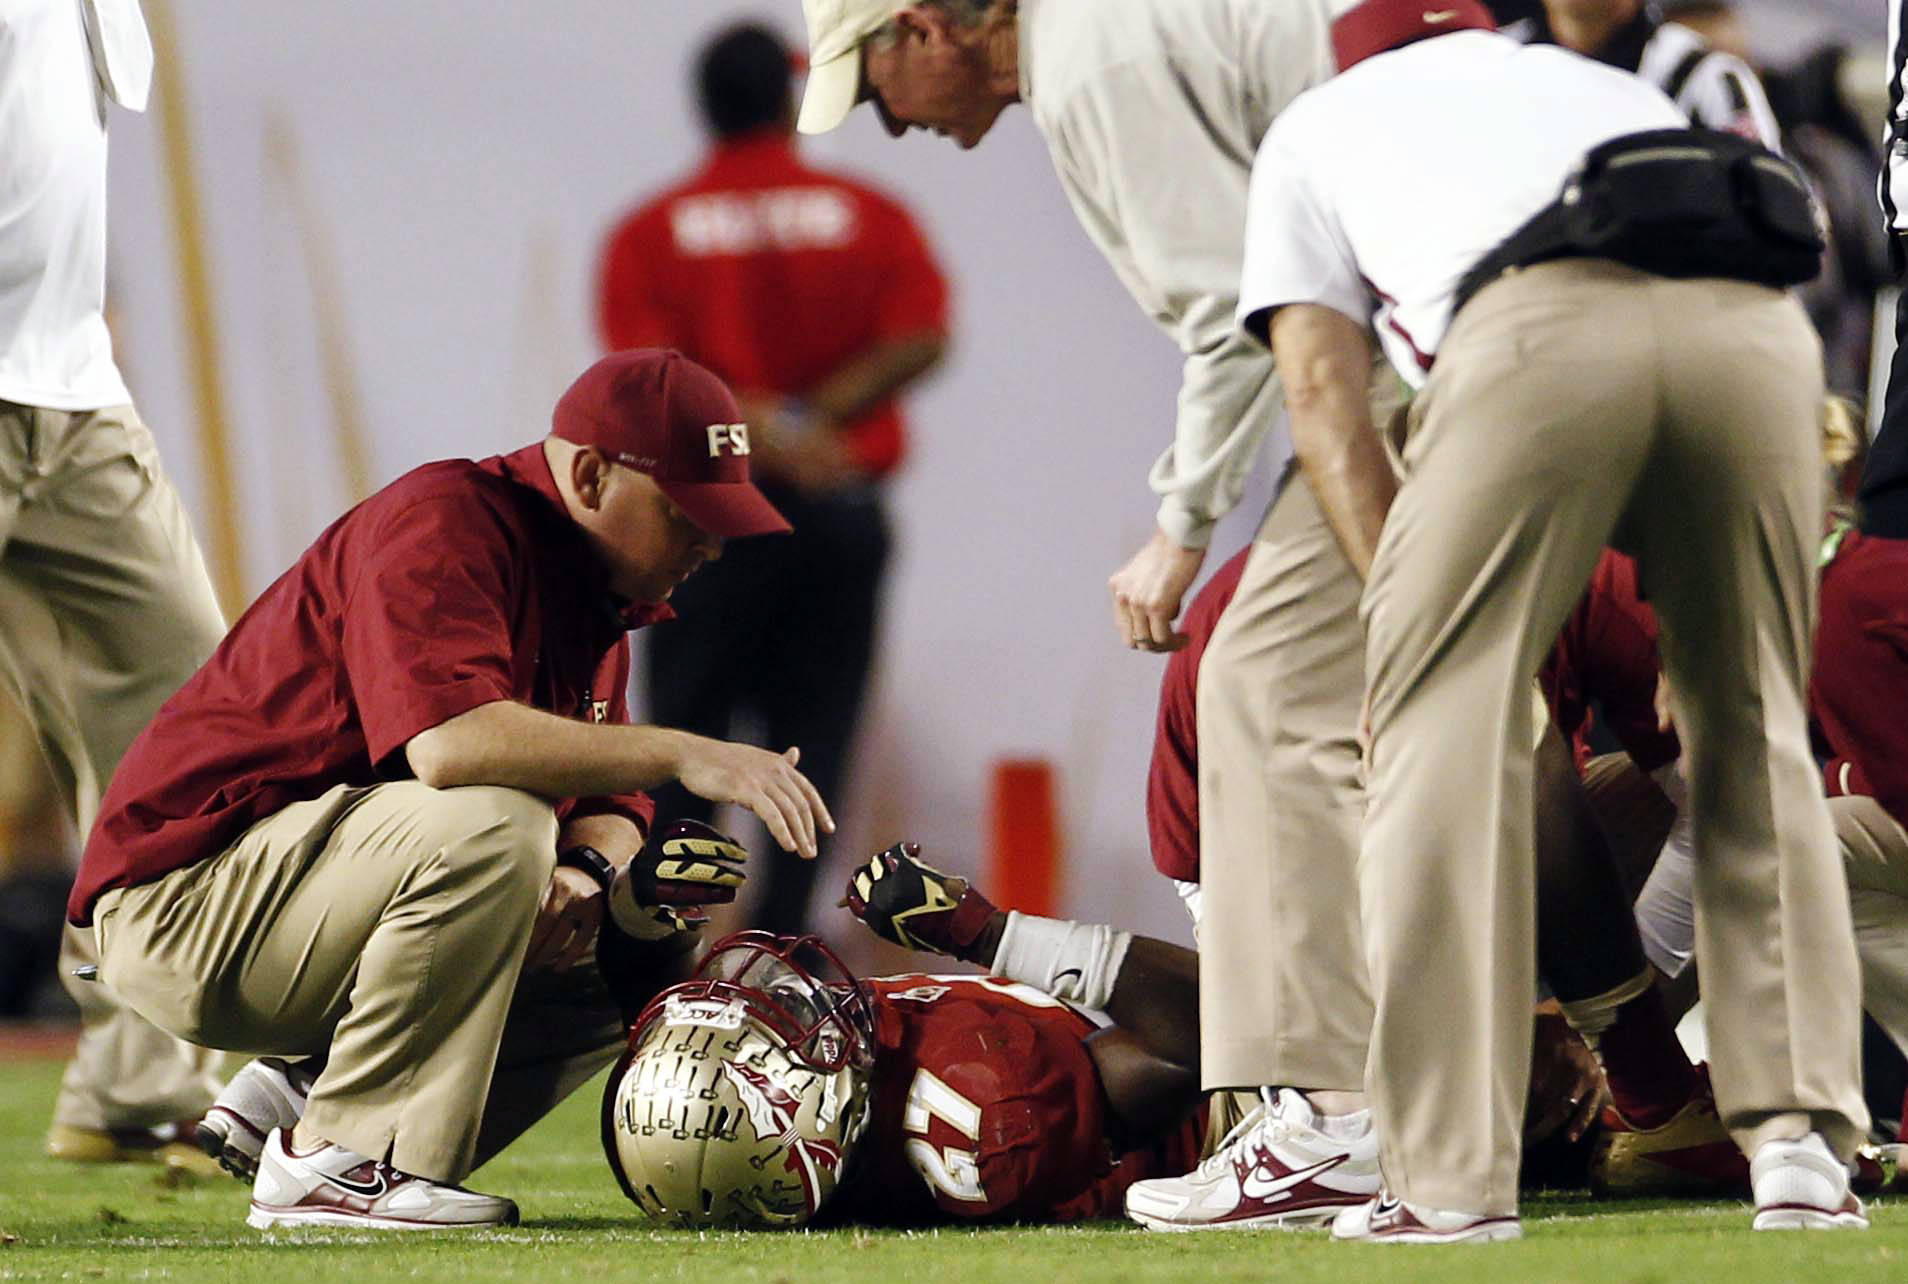 Florida State defensive back Xavier Rhodes (27) is tended to by trainers on the field during the second half of the Orange Bowl NCAA college football game against Northern Illinois, Tuesday, Jan. 1, 2013, in Miami. (AP Photo/J Pat Carter)